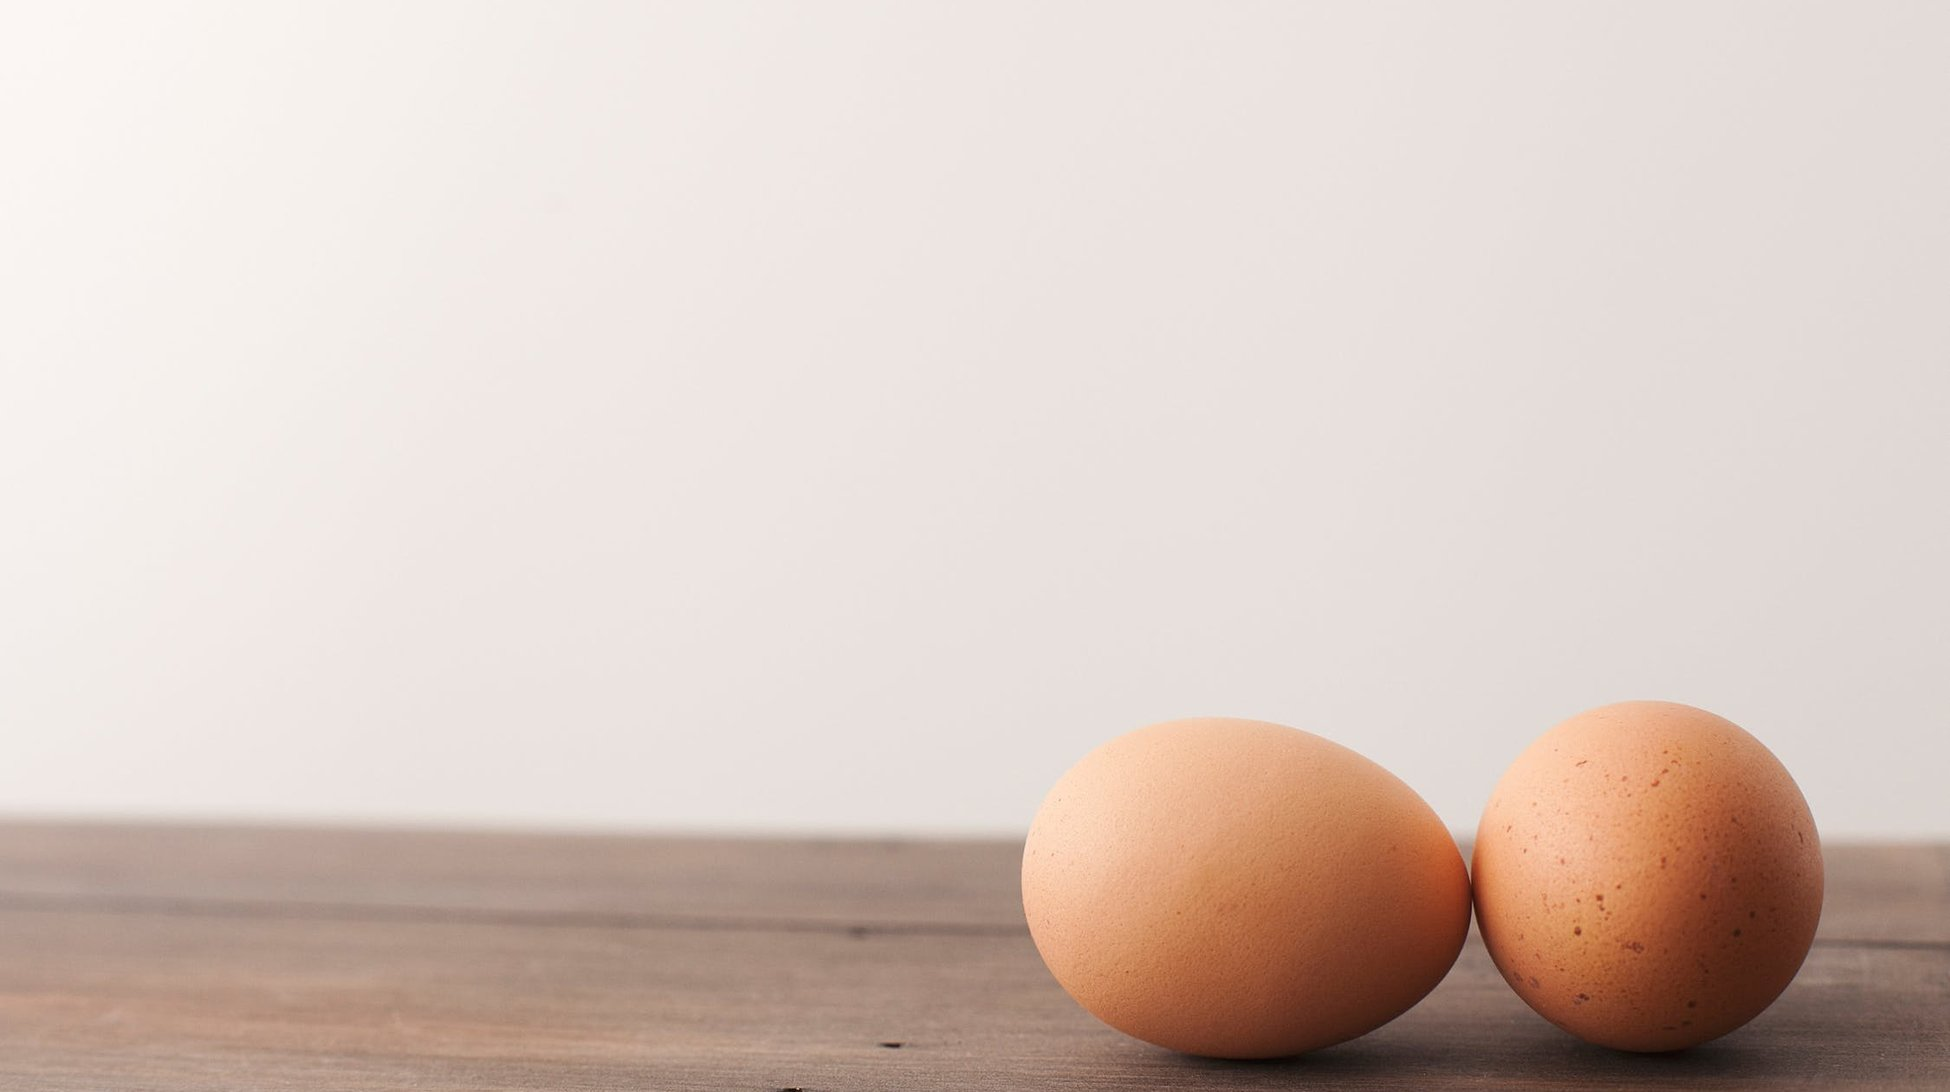 Your Qs: Is it okay to eat eggs every day?